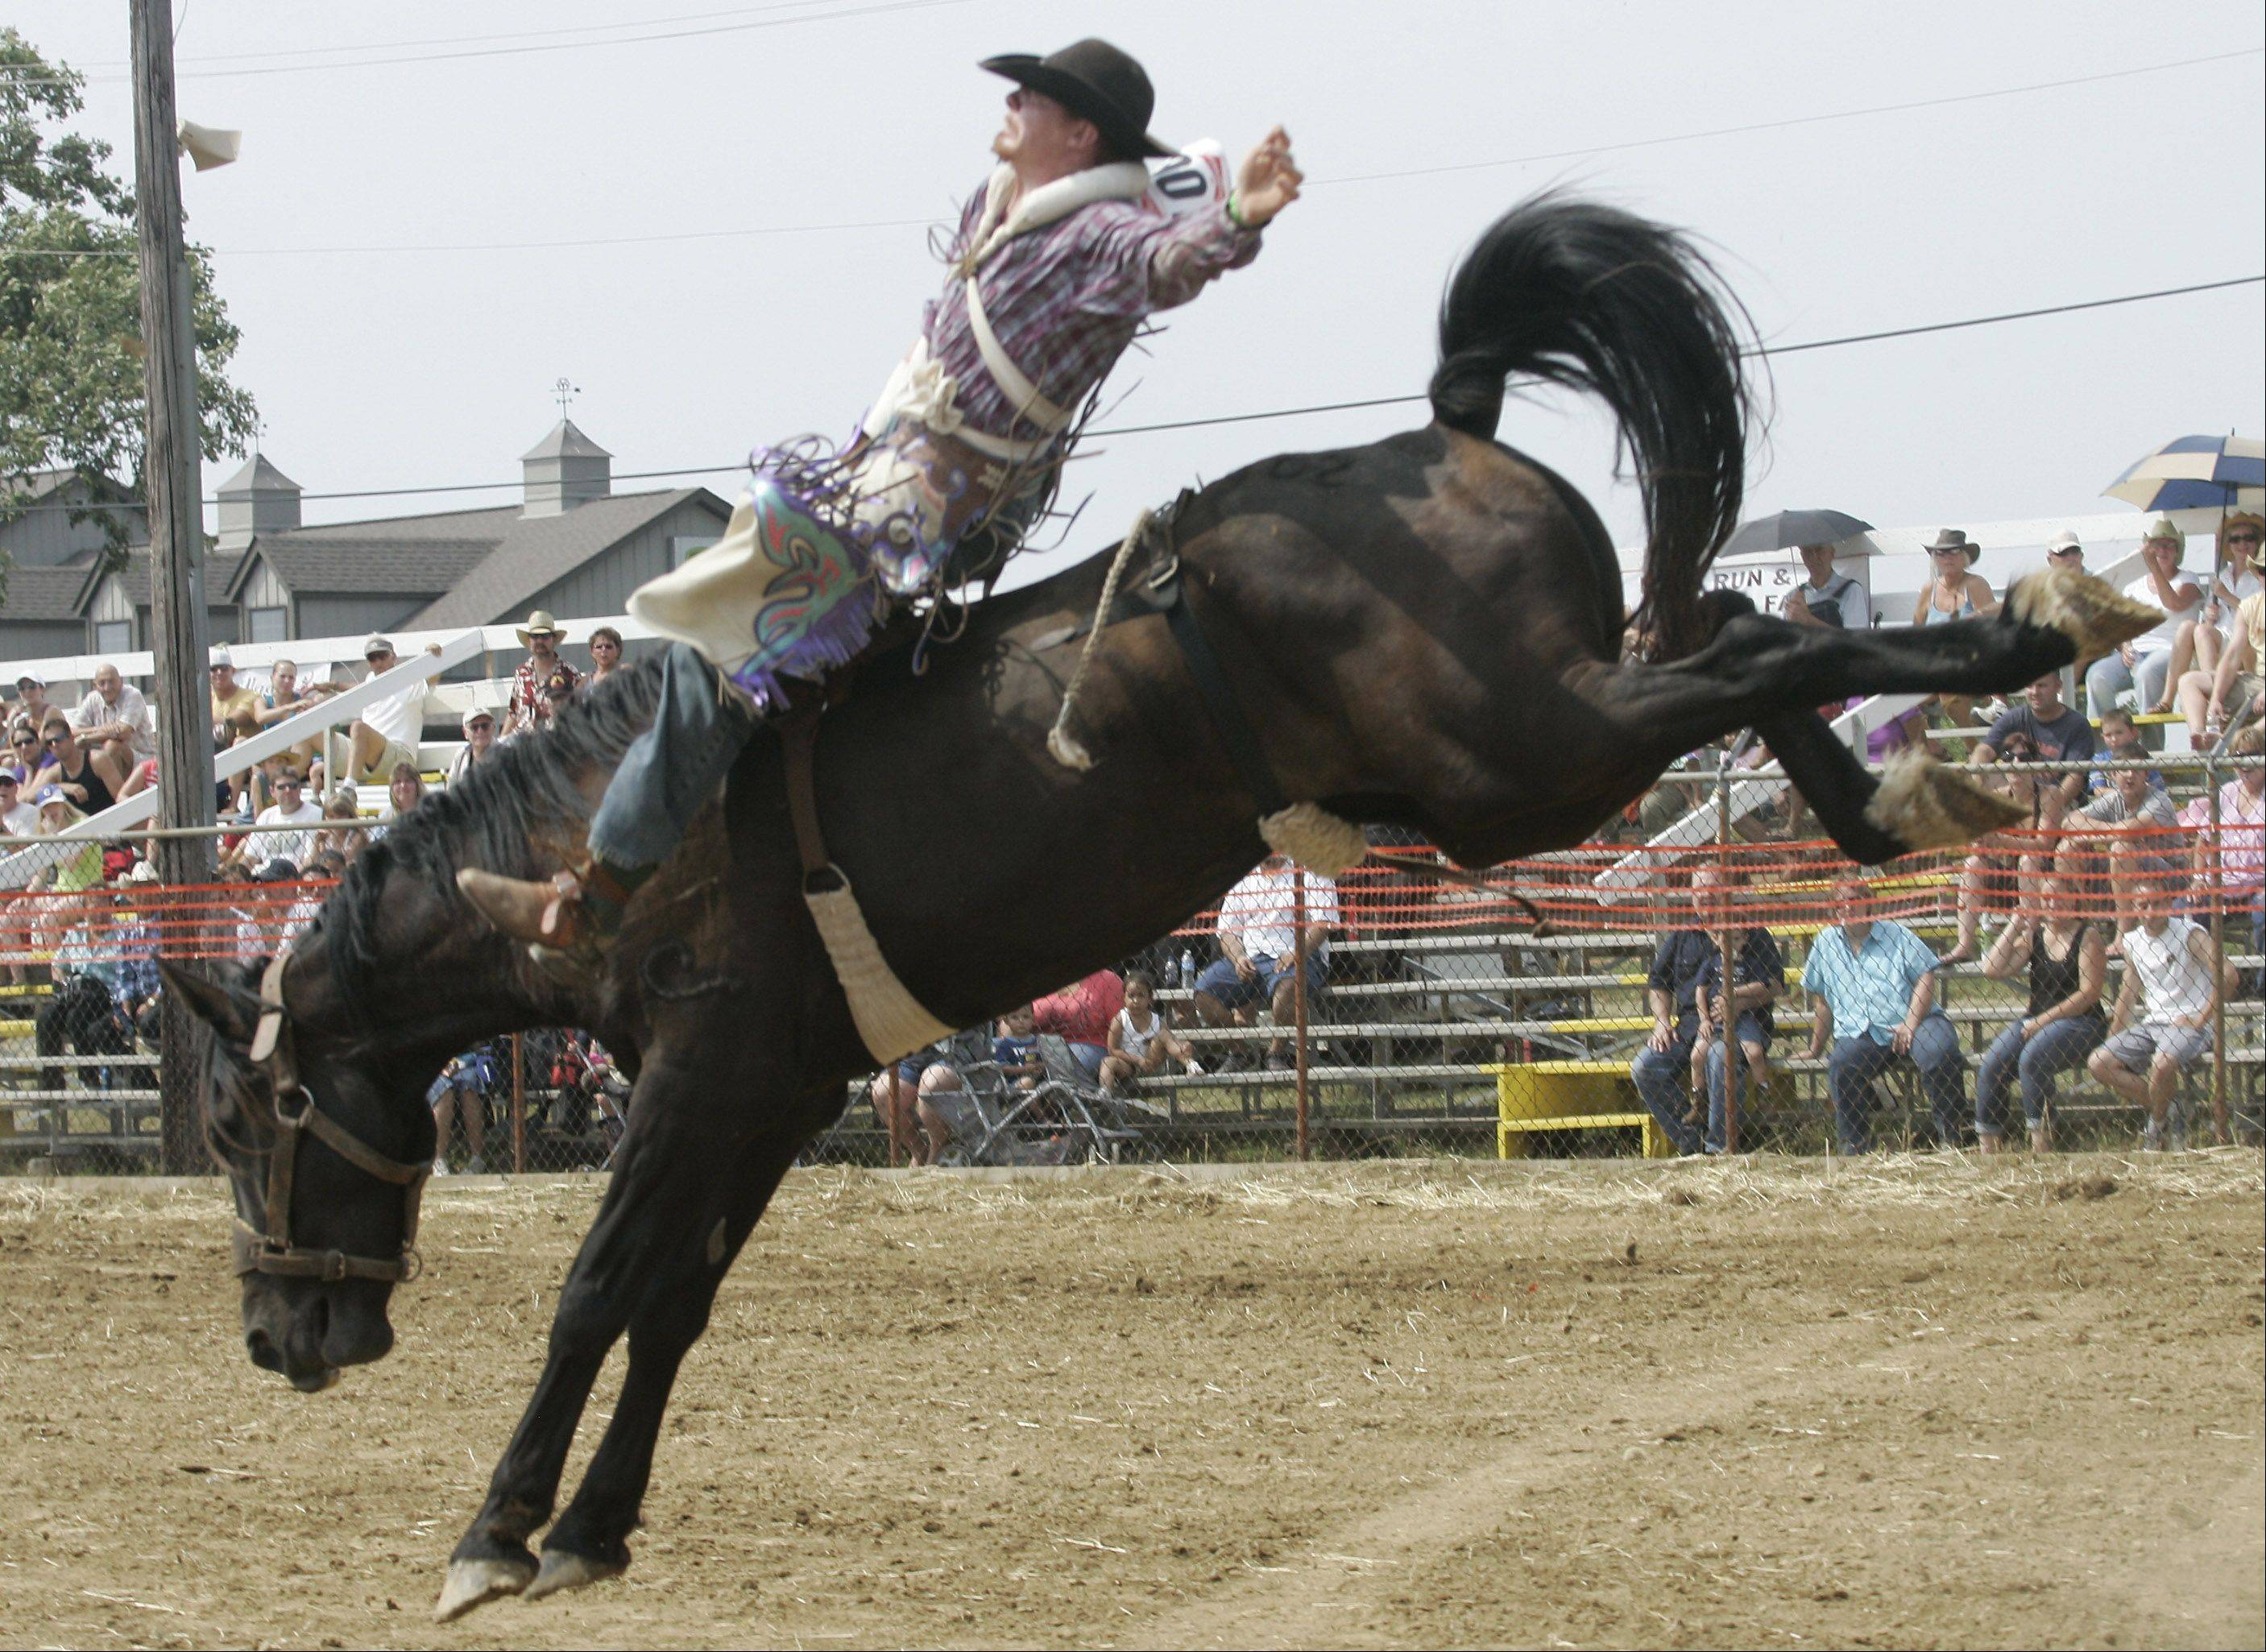 Joshua Whitaker competed in bronco riding during a previous edition of the IPRA Rodeo hosted by the Wauconda Chamber of Commerce at the Golden Oaks rodeo grounds.